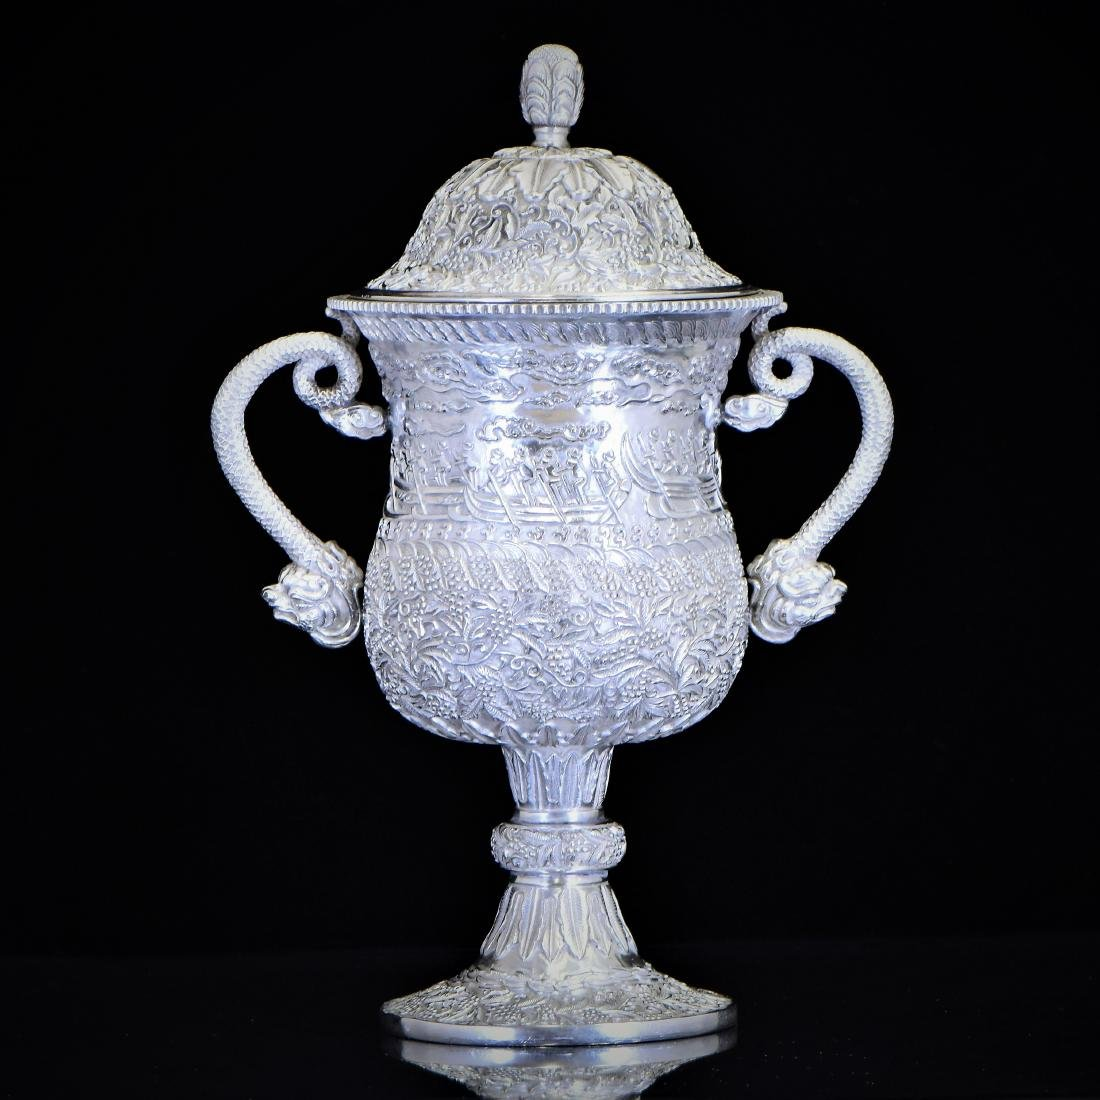 19TH C. CHINESE EXPORT SILVER REPOUSSED DRAGON BOATS